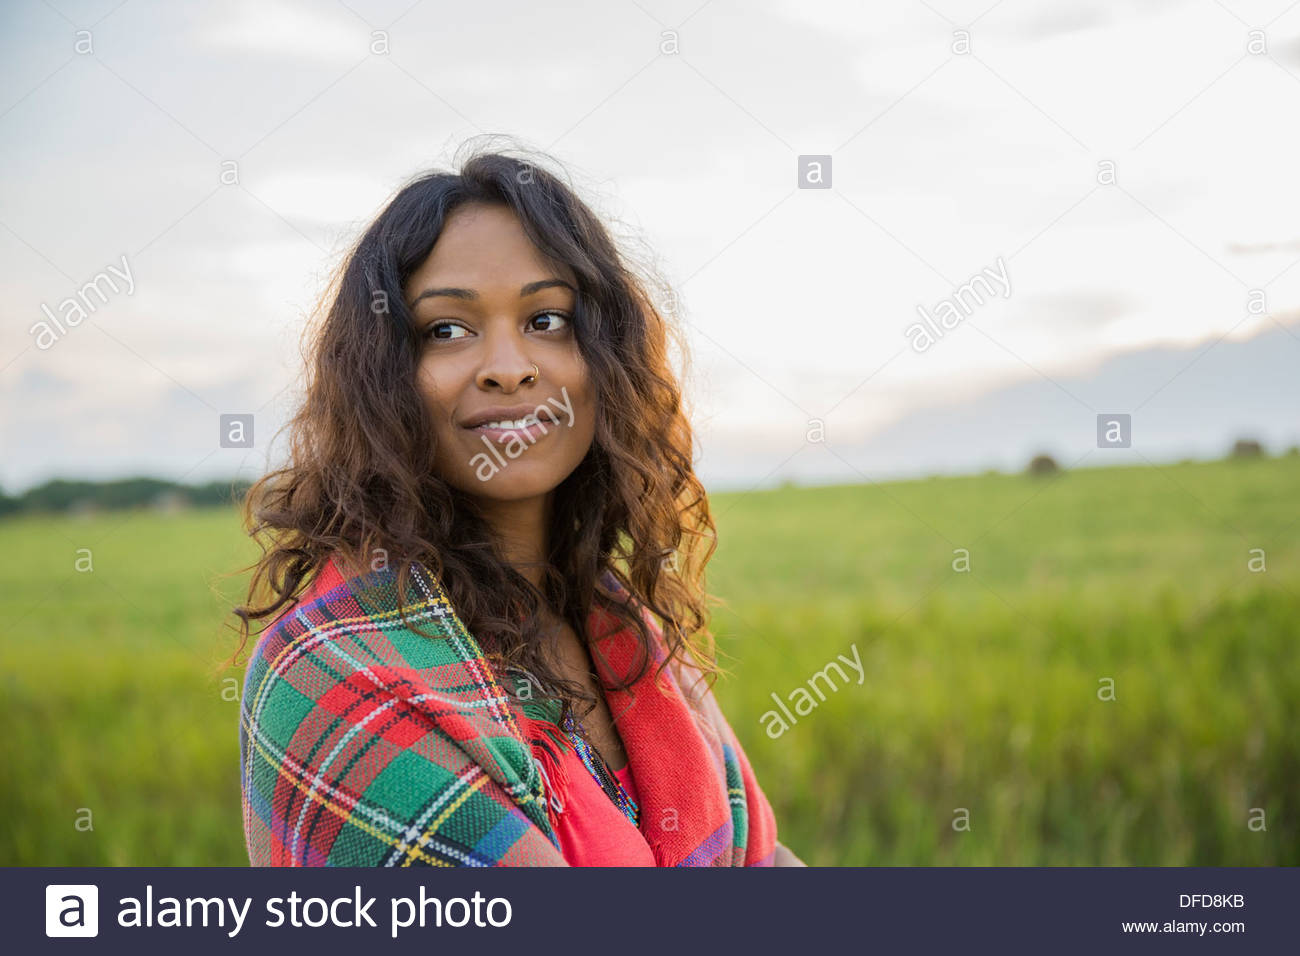 Smiling woman wrapped in blanket outdoors - Stock Image